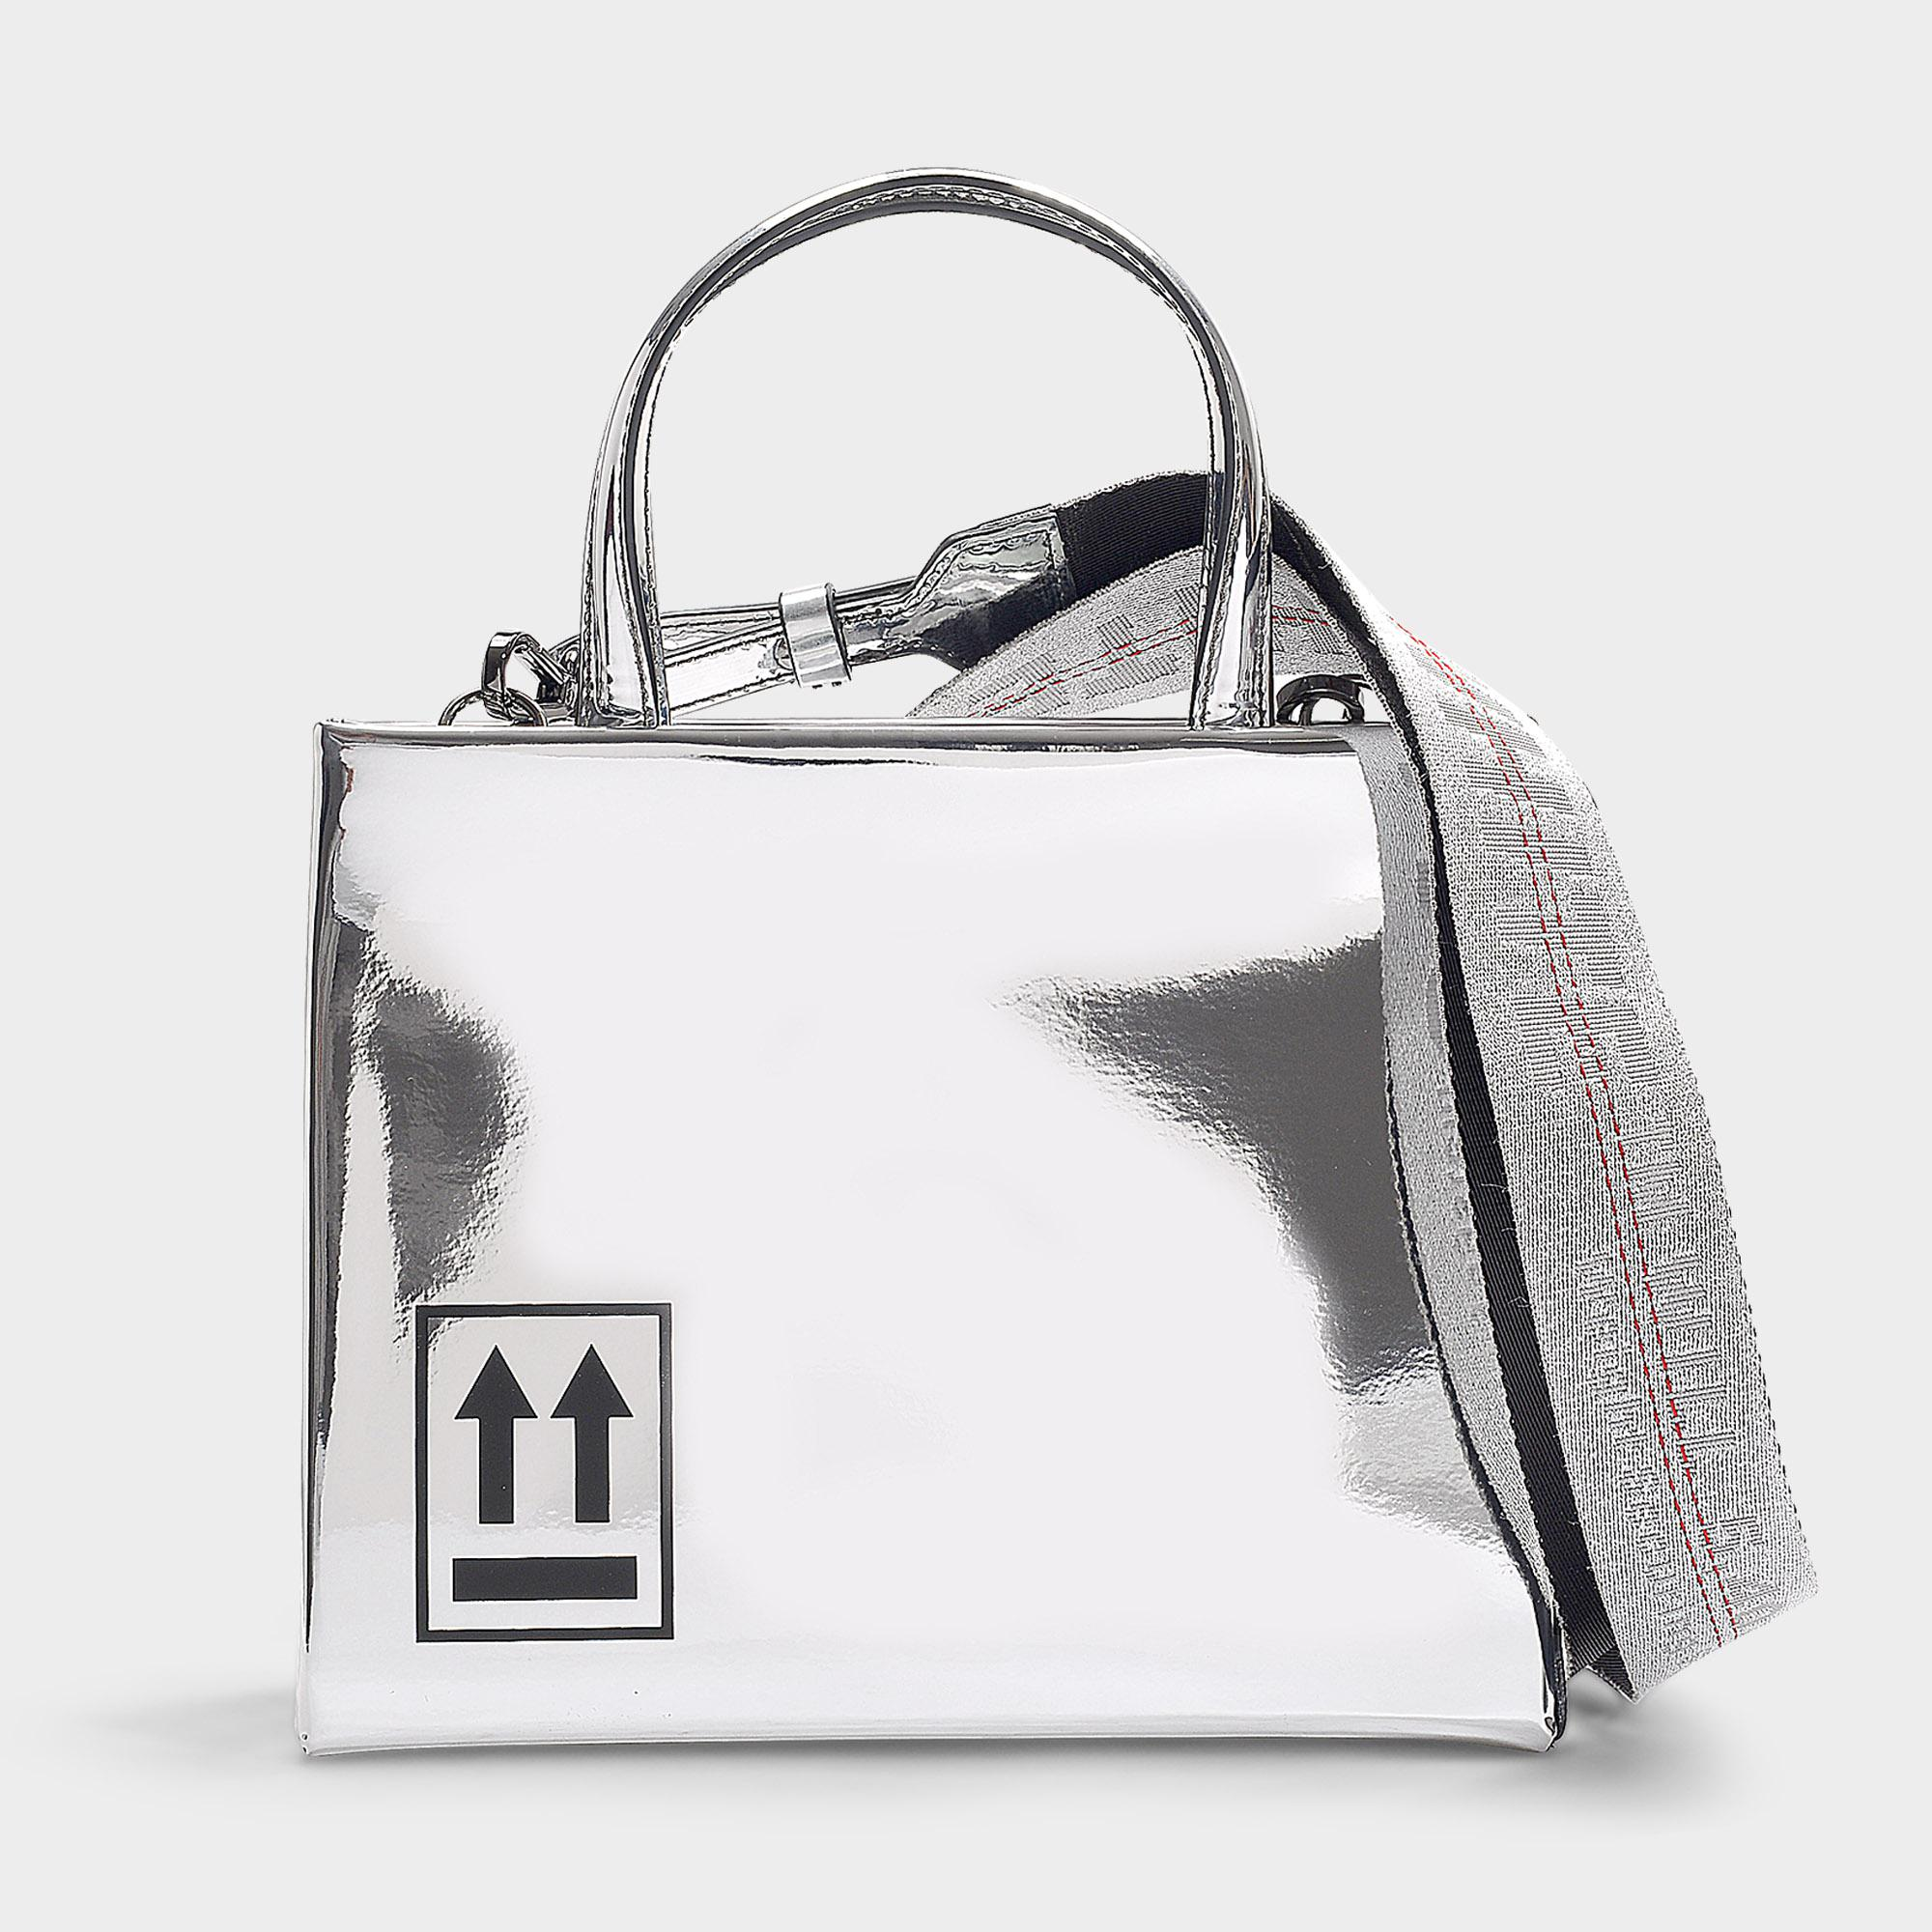 e7372e8704 off-white-co-virgil-abloh-Metallic-Mirror-Box-Mini-Bag-In-Argente-Calfskin.jpeg